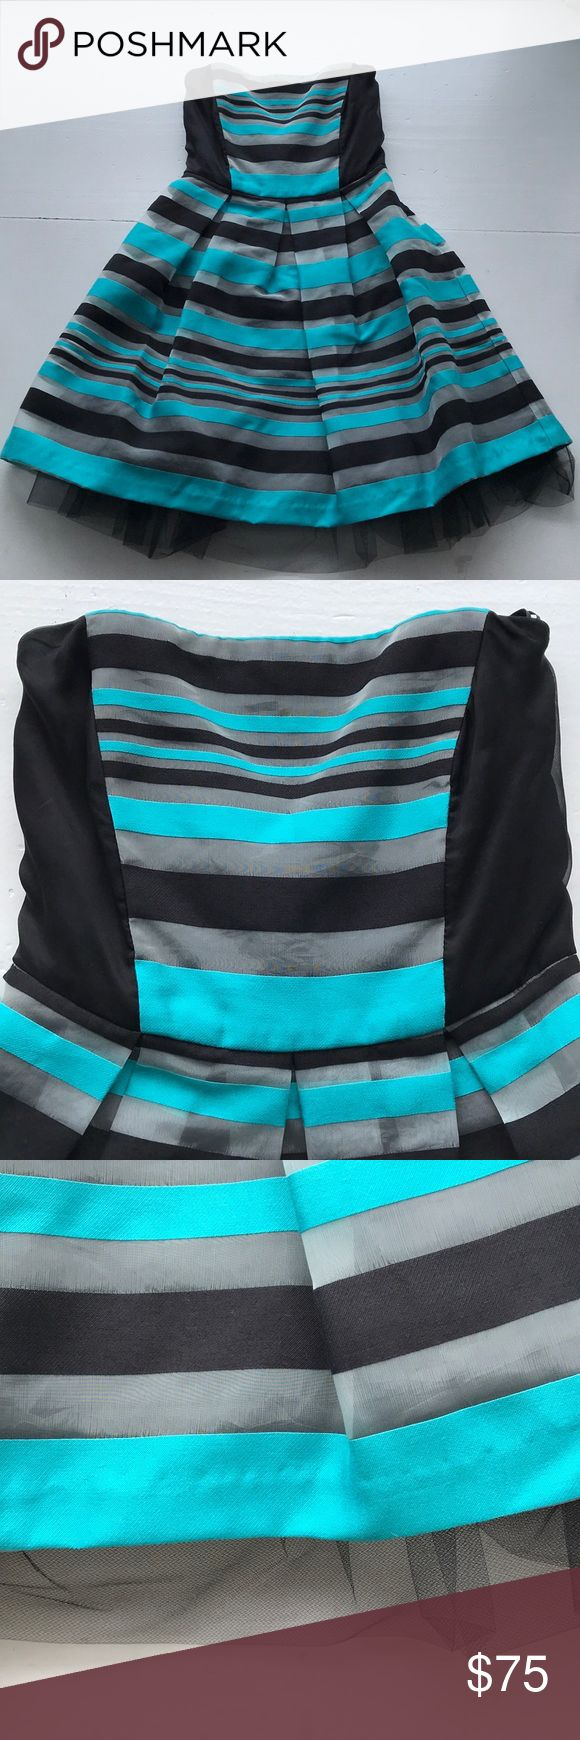 Striped Cocktail Dress Teal and Black stripes. Strapless. Lined with black tulle and satin. Purchased from ModCloth. Only worn once! Eva Franco Dresses Strapless